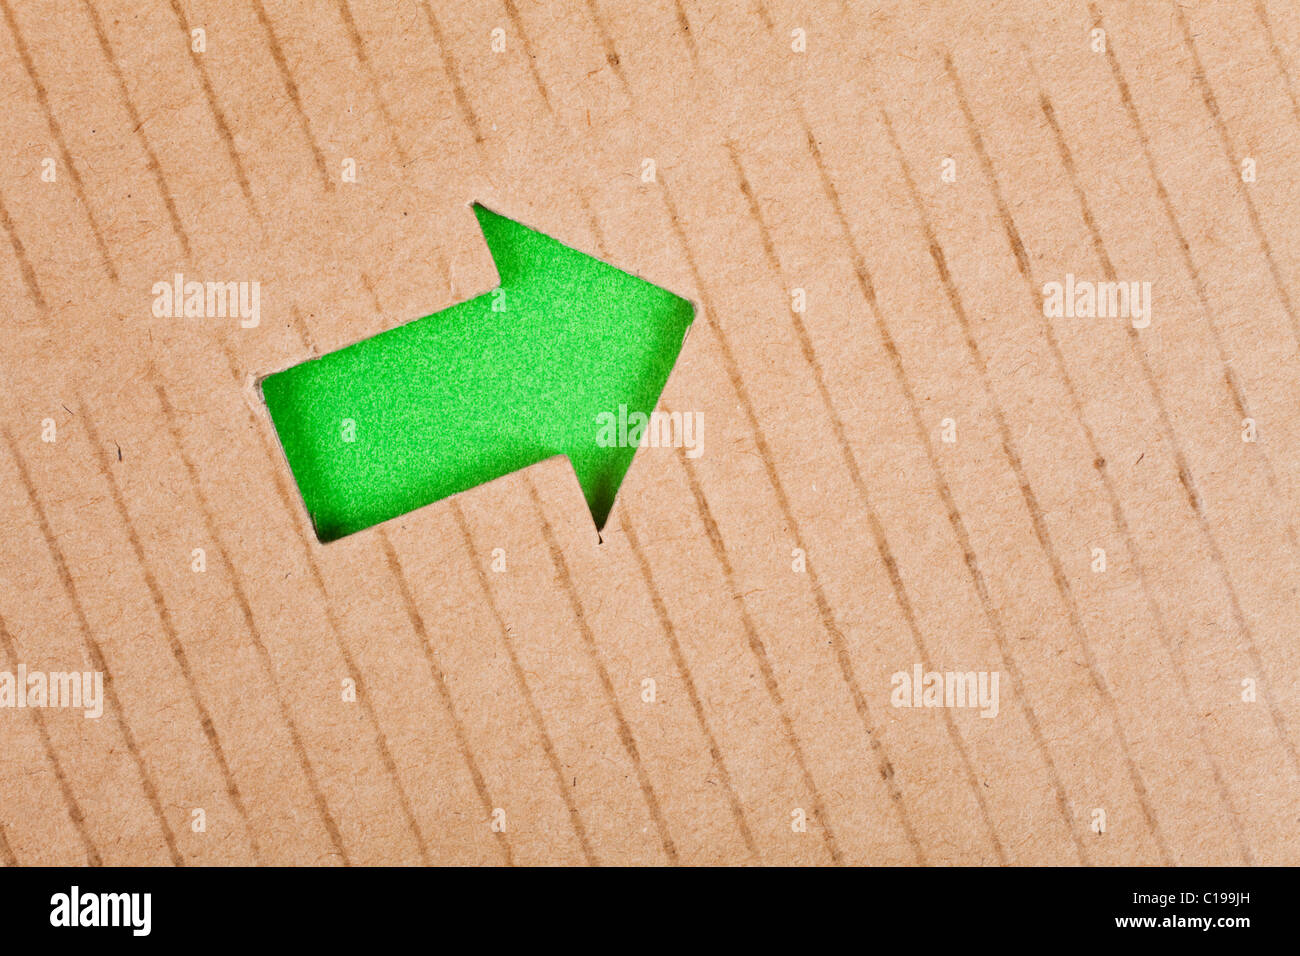 Arrow Sign and cardboard for background - Stock Image